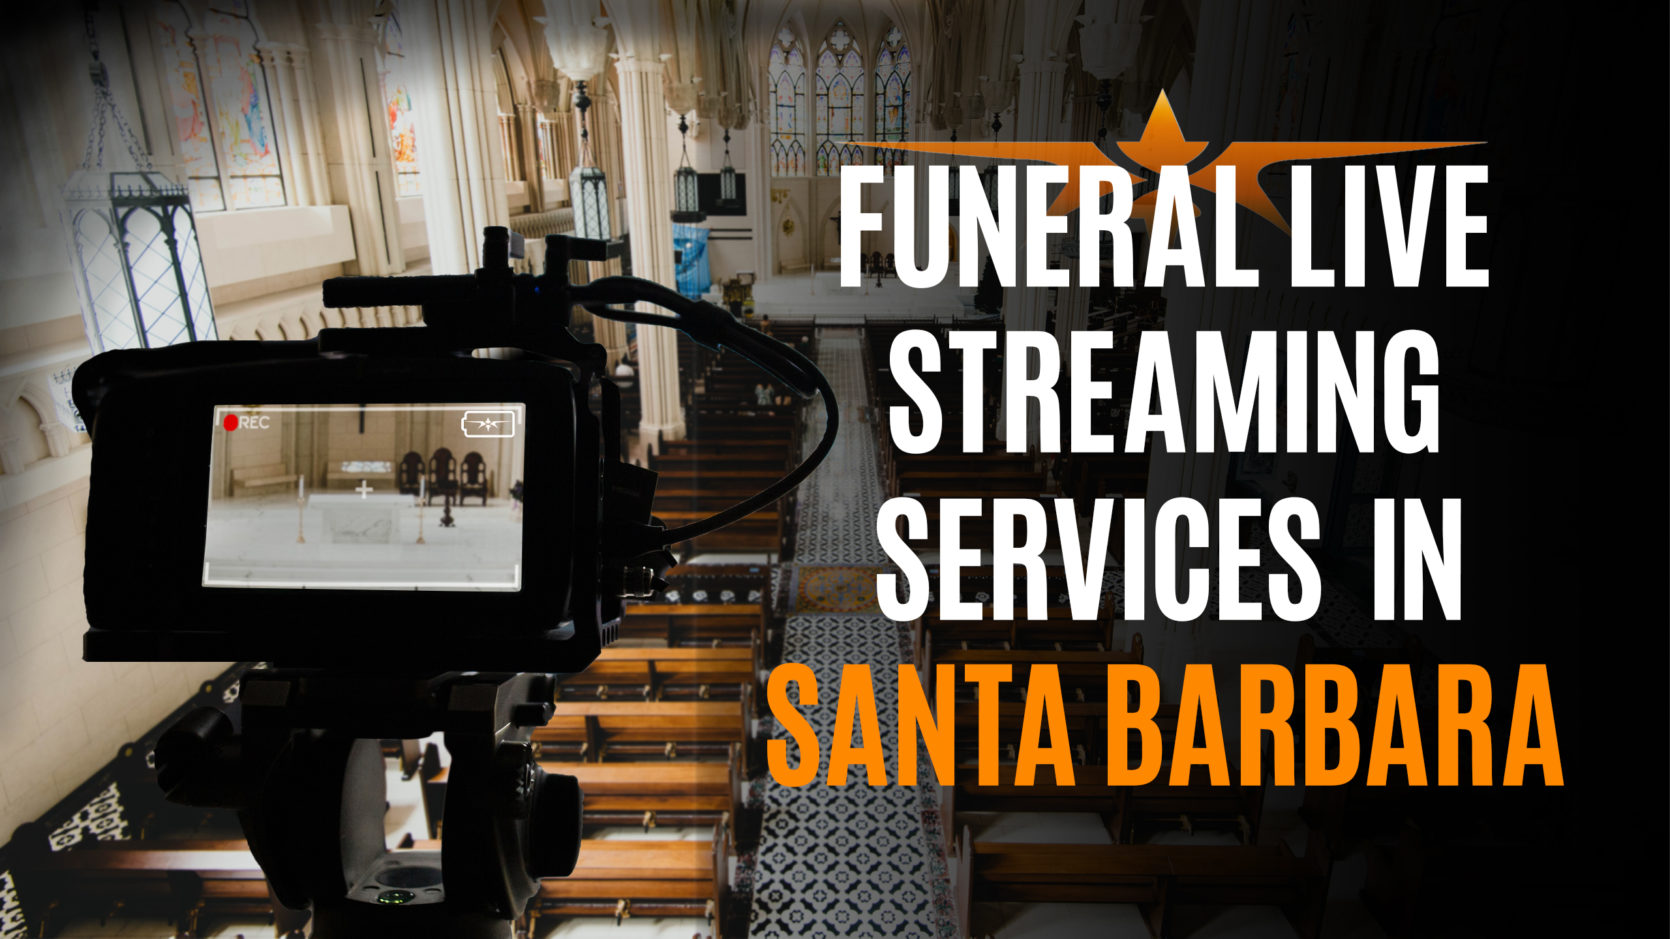 Funeral Live Streaming Services in Santa Barbara